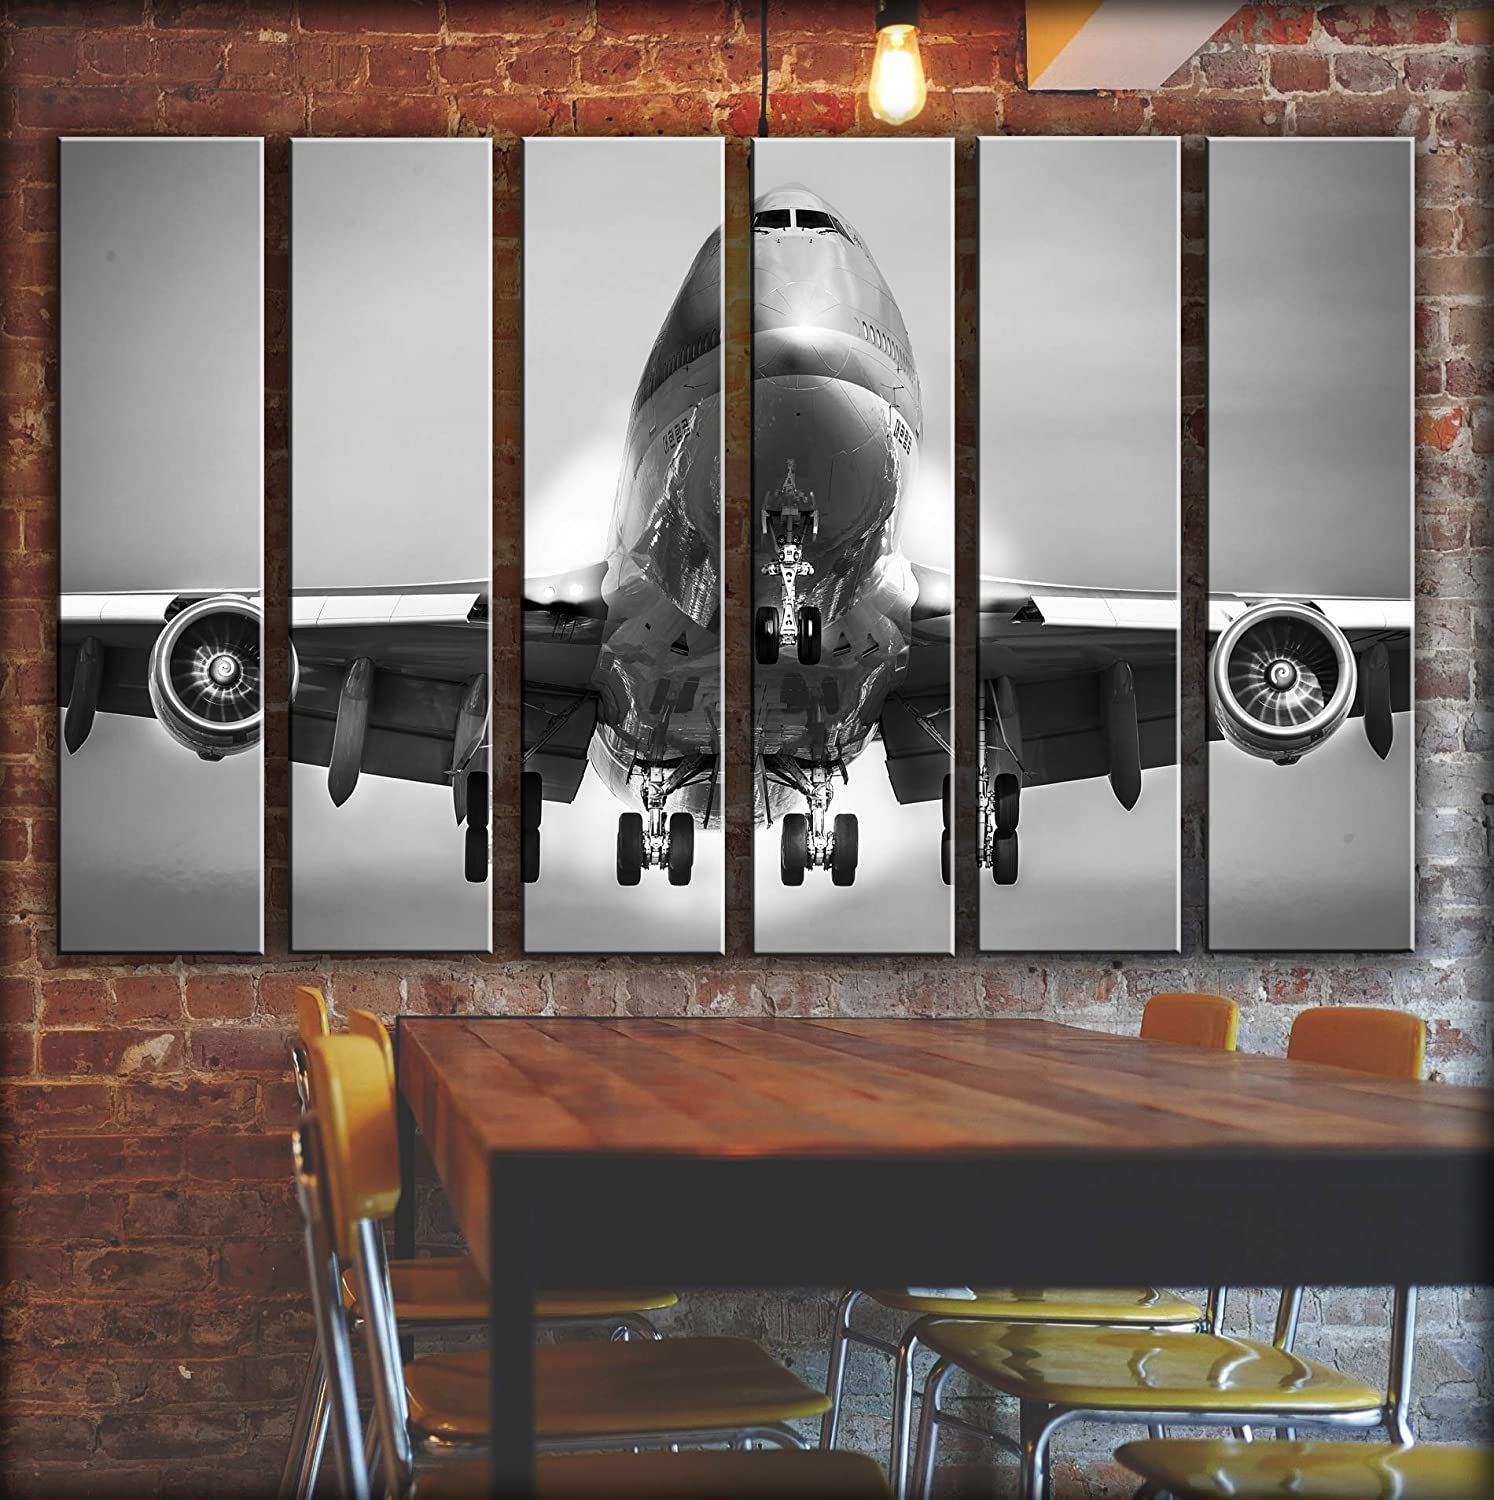 Big Set Jumbo Jet Boeing-747 Wall Art Decor Picture Painting Poster Print on 6 Canvas Panels Pieces – Aviation Aircraft Theme Wall Decoration Set – Wall Picture for Living Room Nursary 44 by 67 in